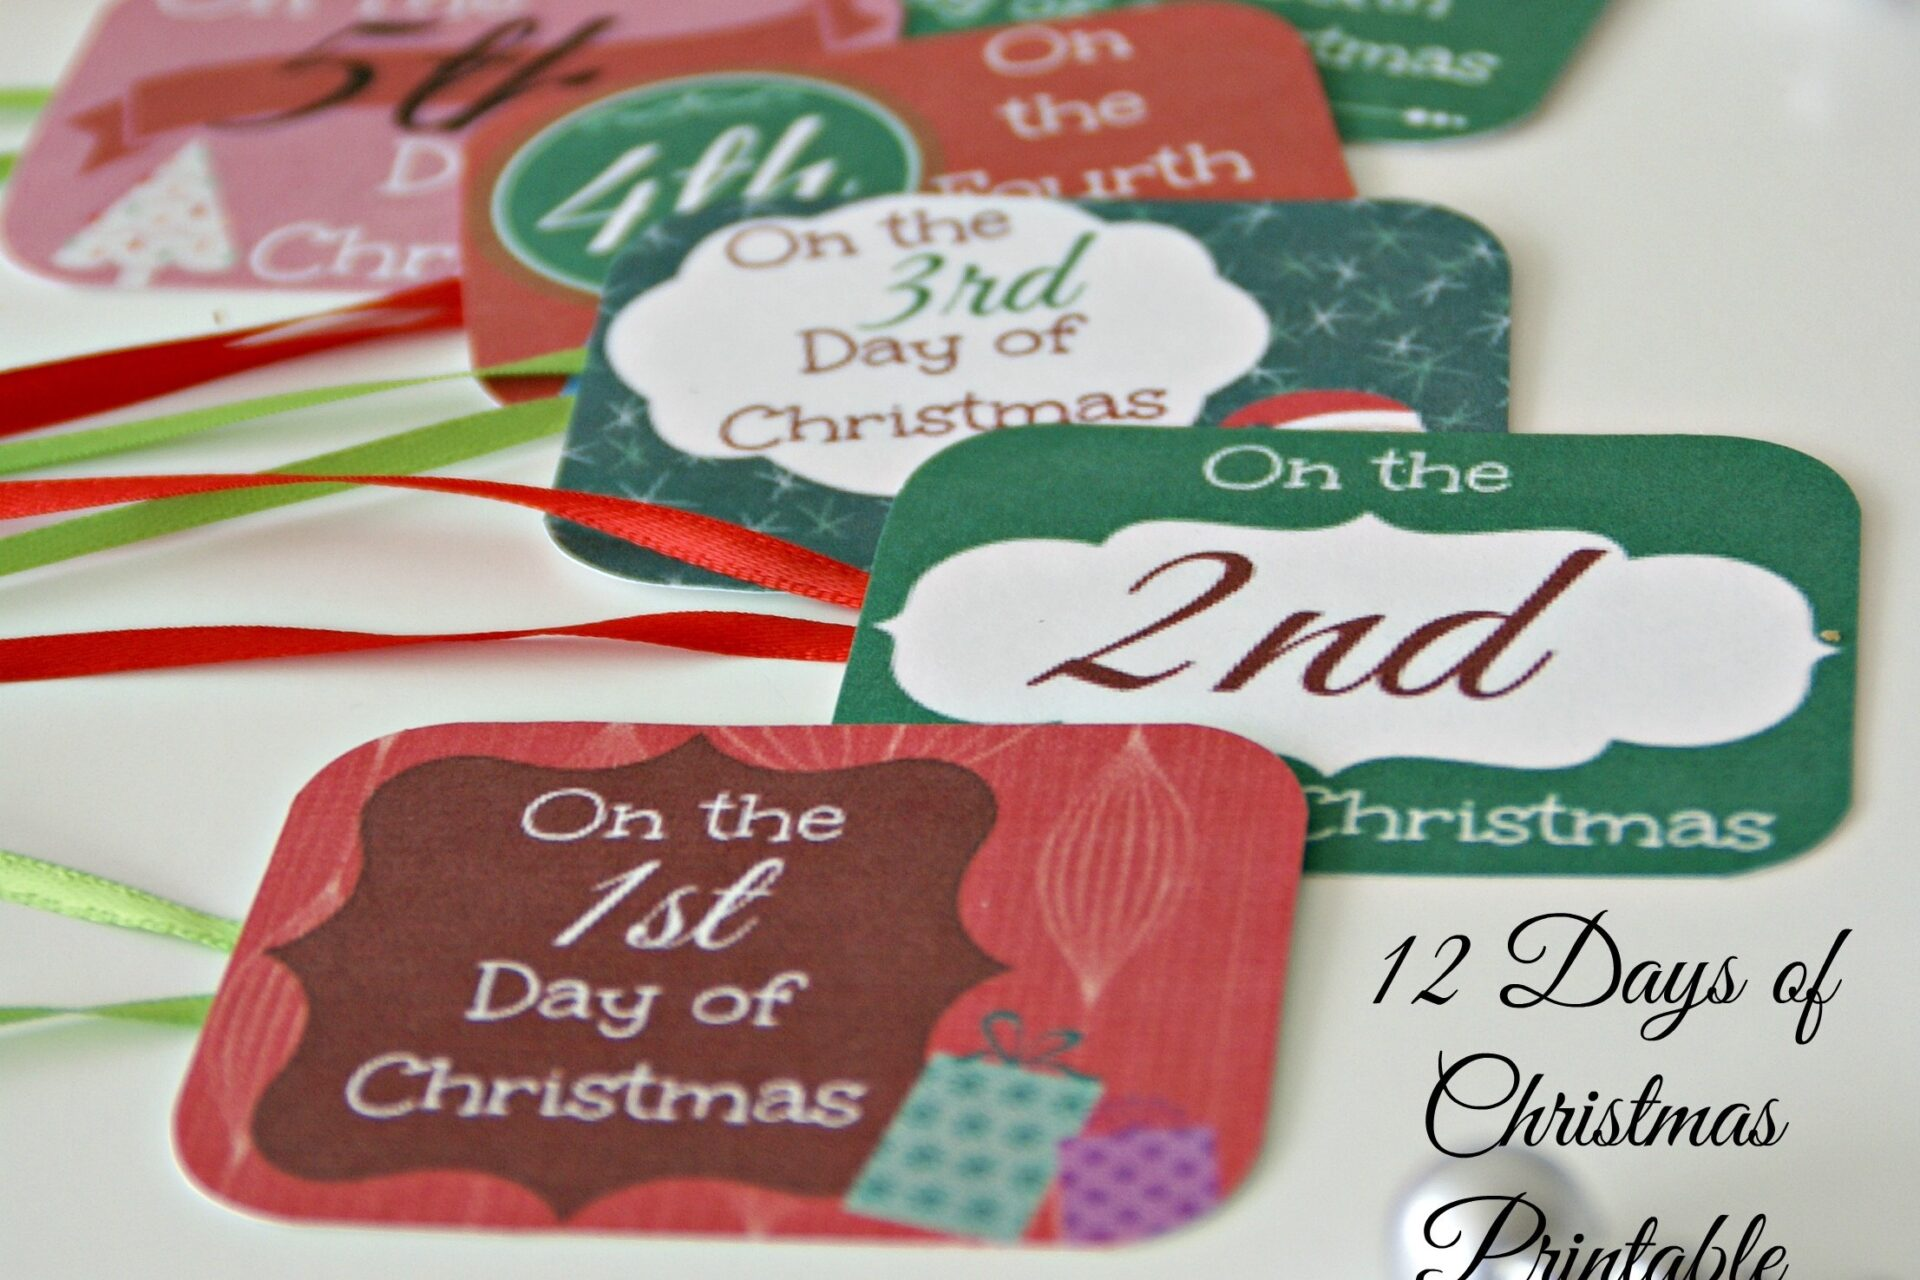 photo regarding 12 Days of Christmas Printable Tags known as 12 Times of Xmas Printable Tags - Chaotic Mothers Helper